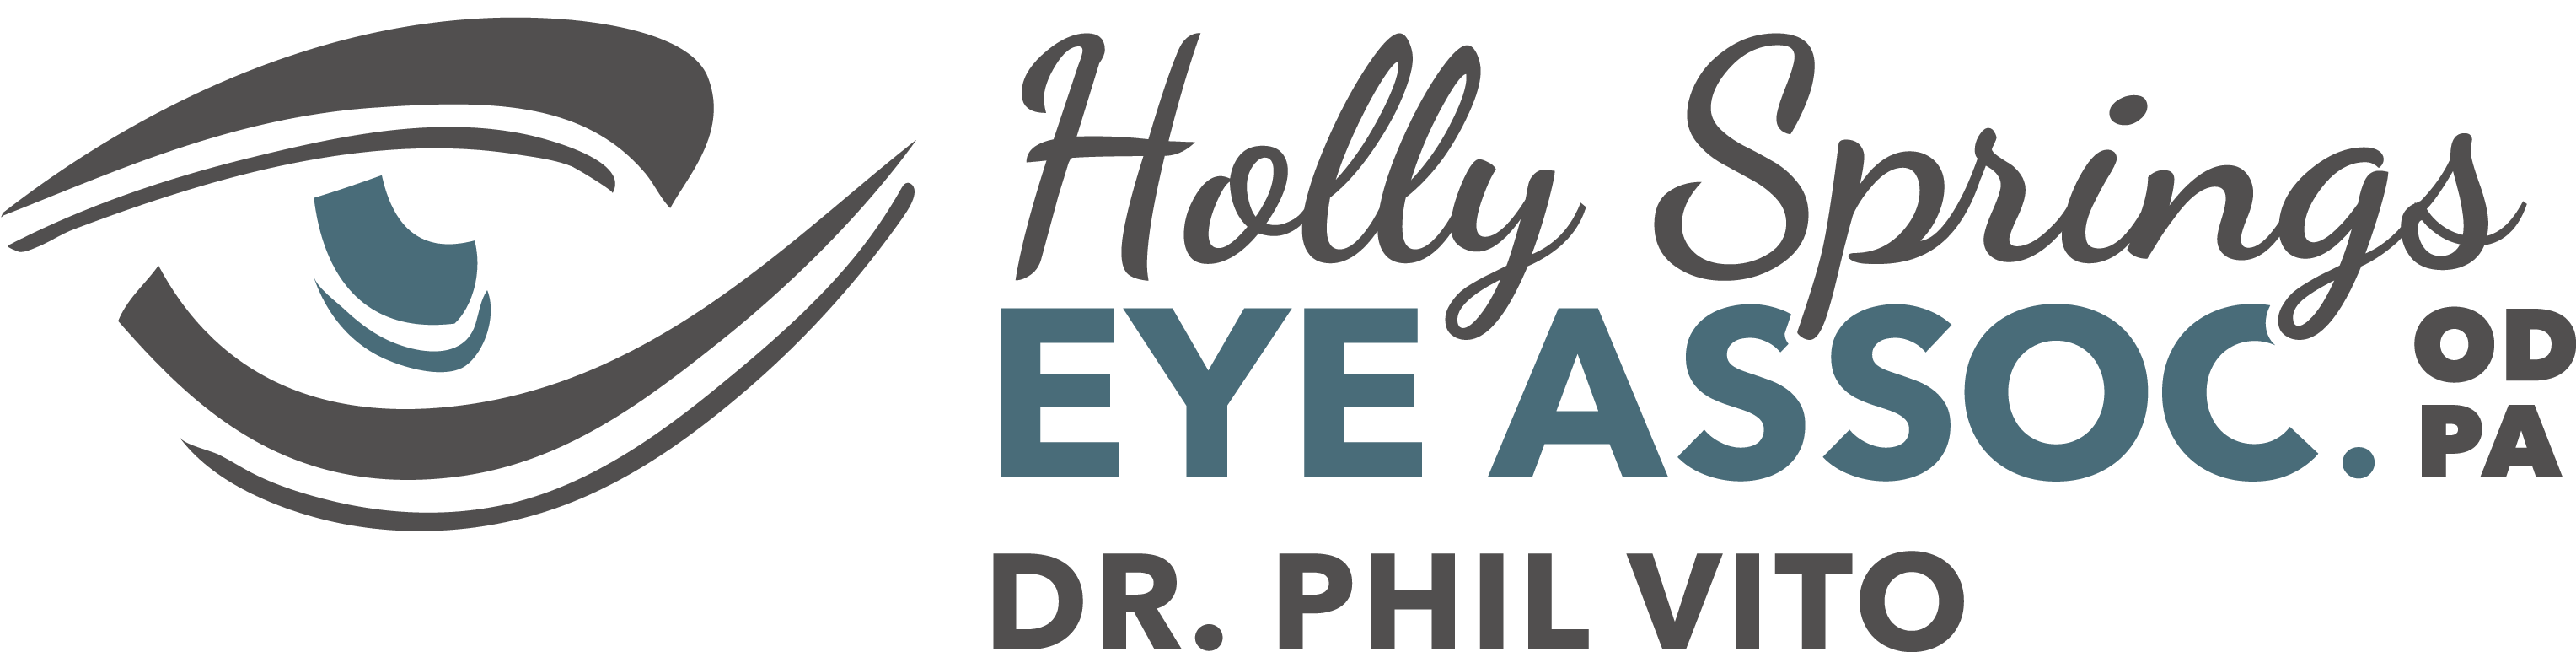 HSeye_logo_refresh_final(with_dr)